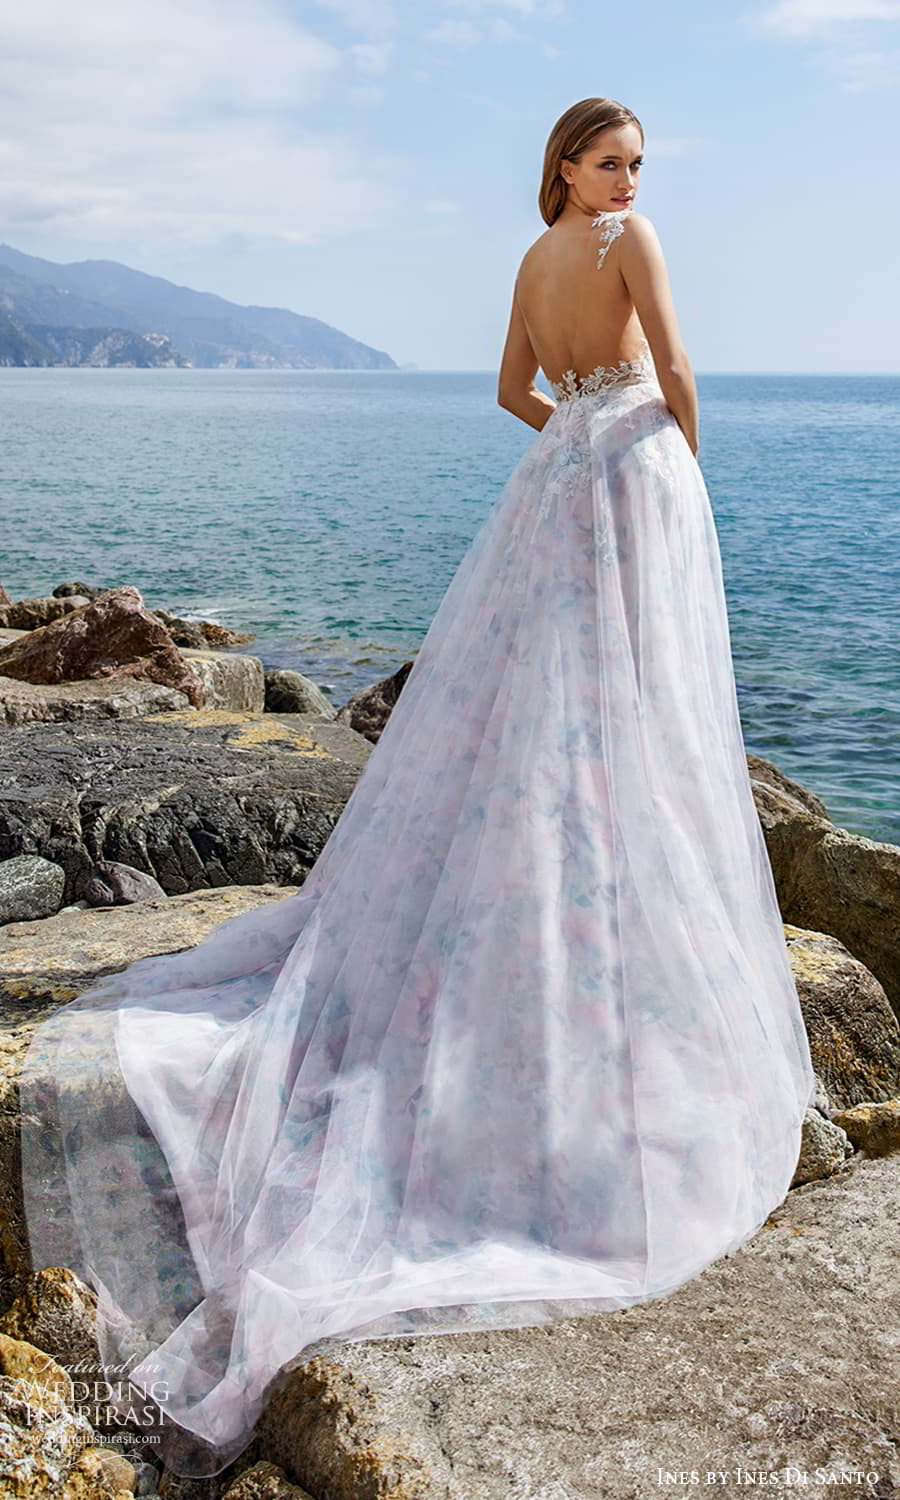 ines ines di santo spring 2022 bridal sleeveless thick straps v neckline ruched embellished bodice print skirt a line wedding dress multicolor chapel train sheeer back (12) bv